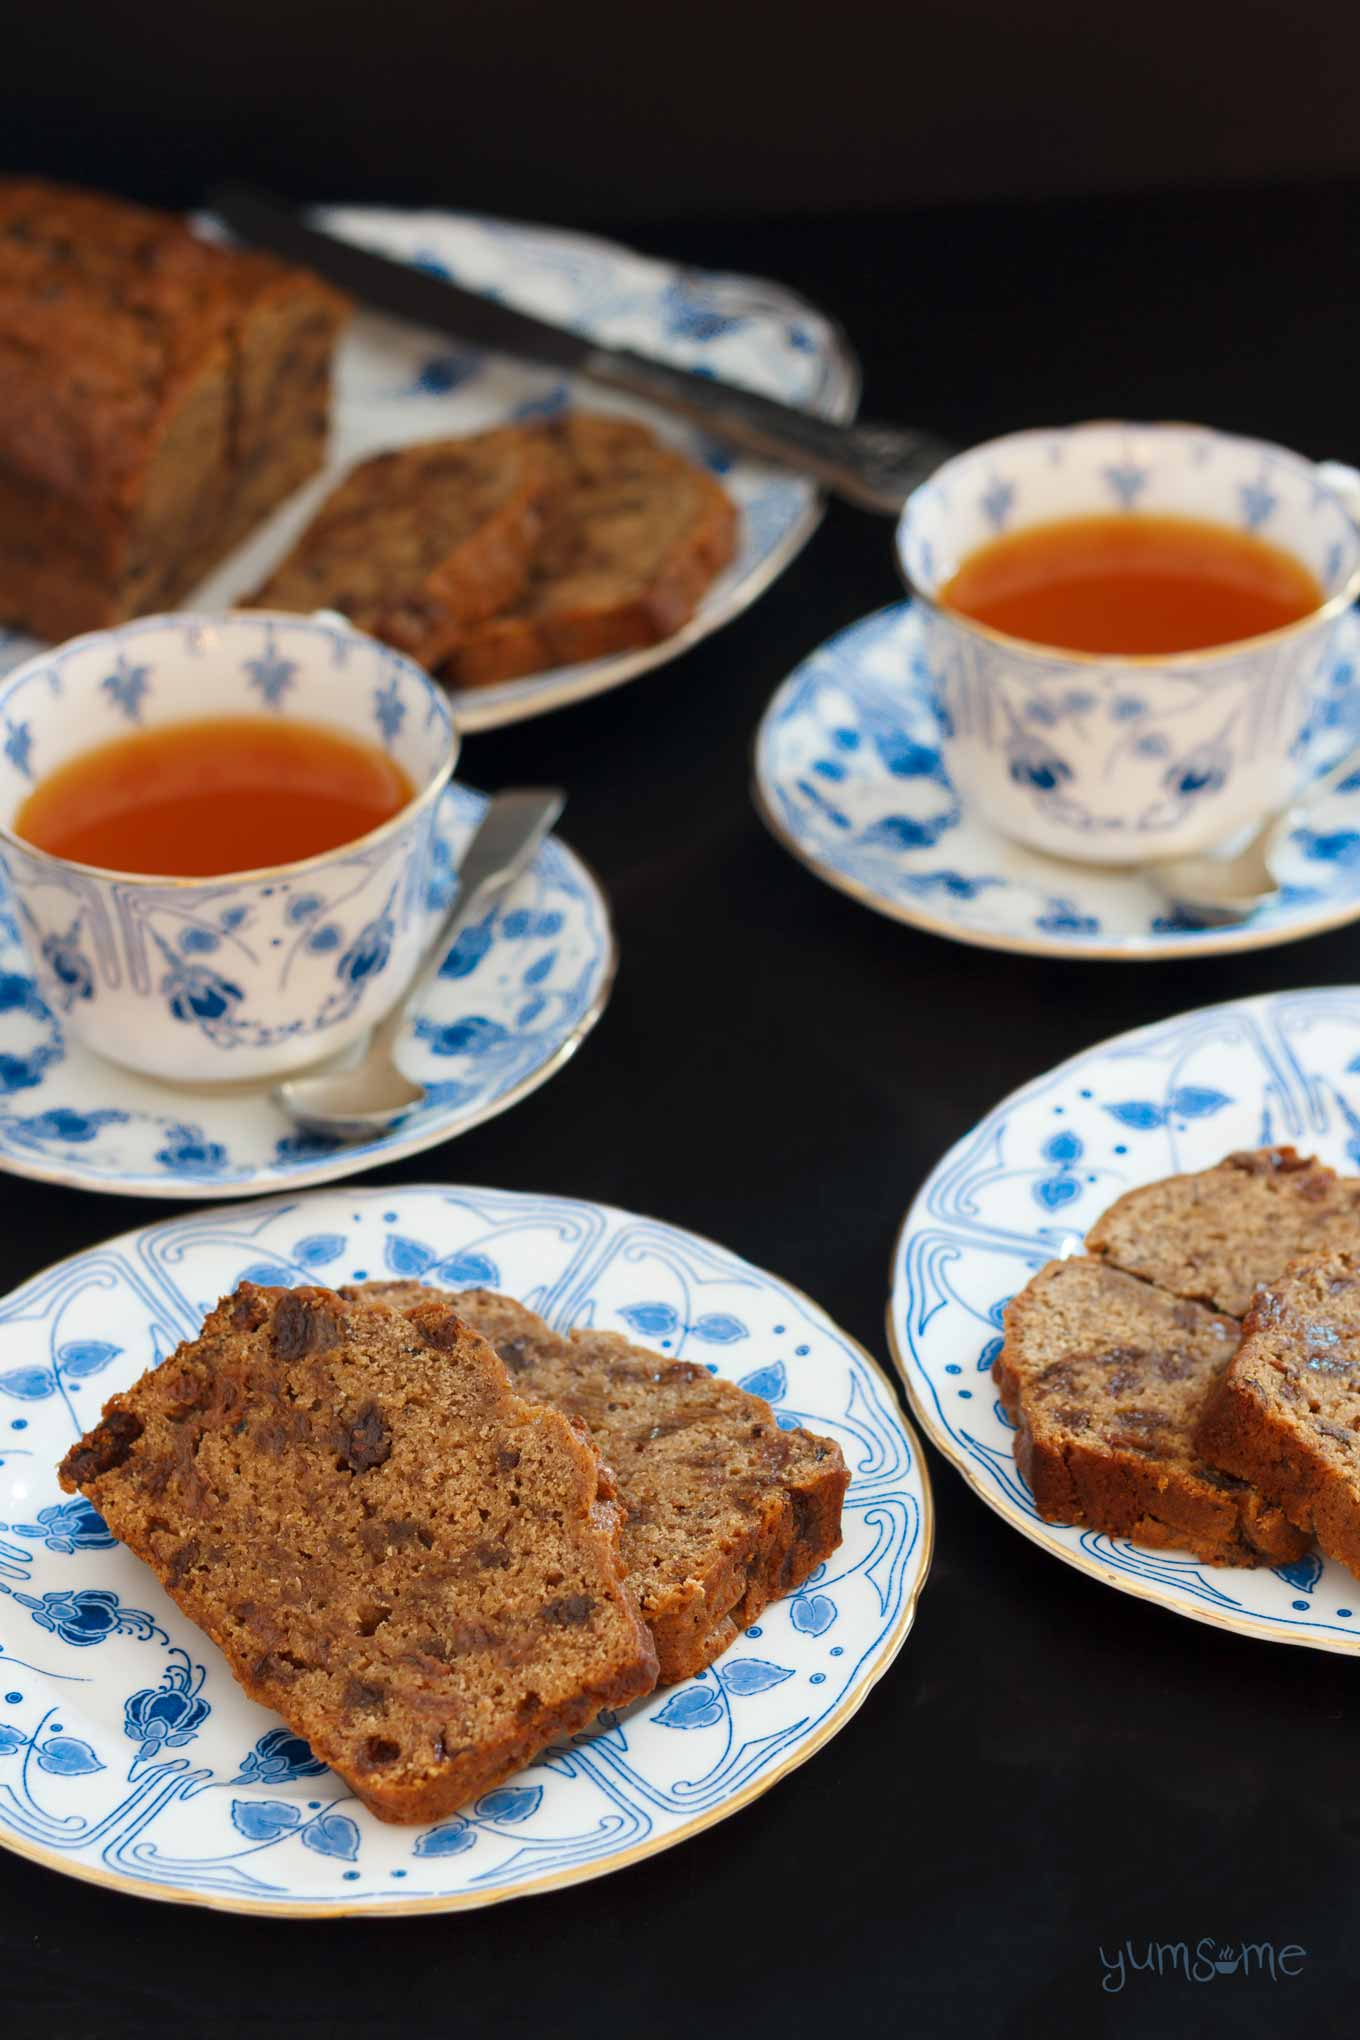 afternoon tea with vegan english tea loaf and earl grey tea | yumsome.com